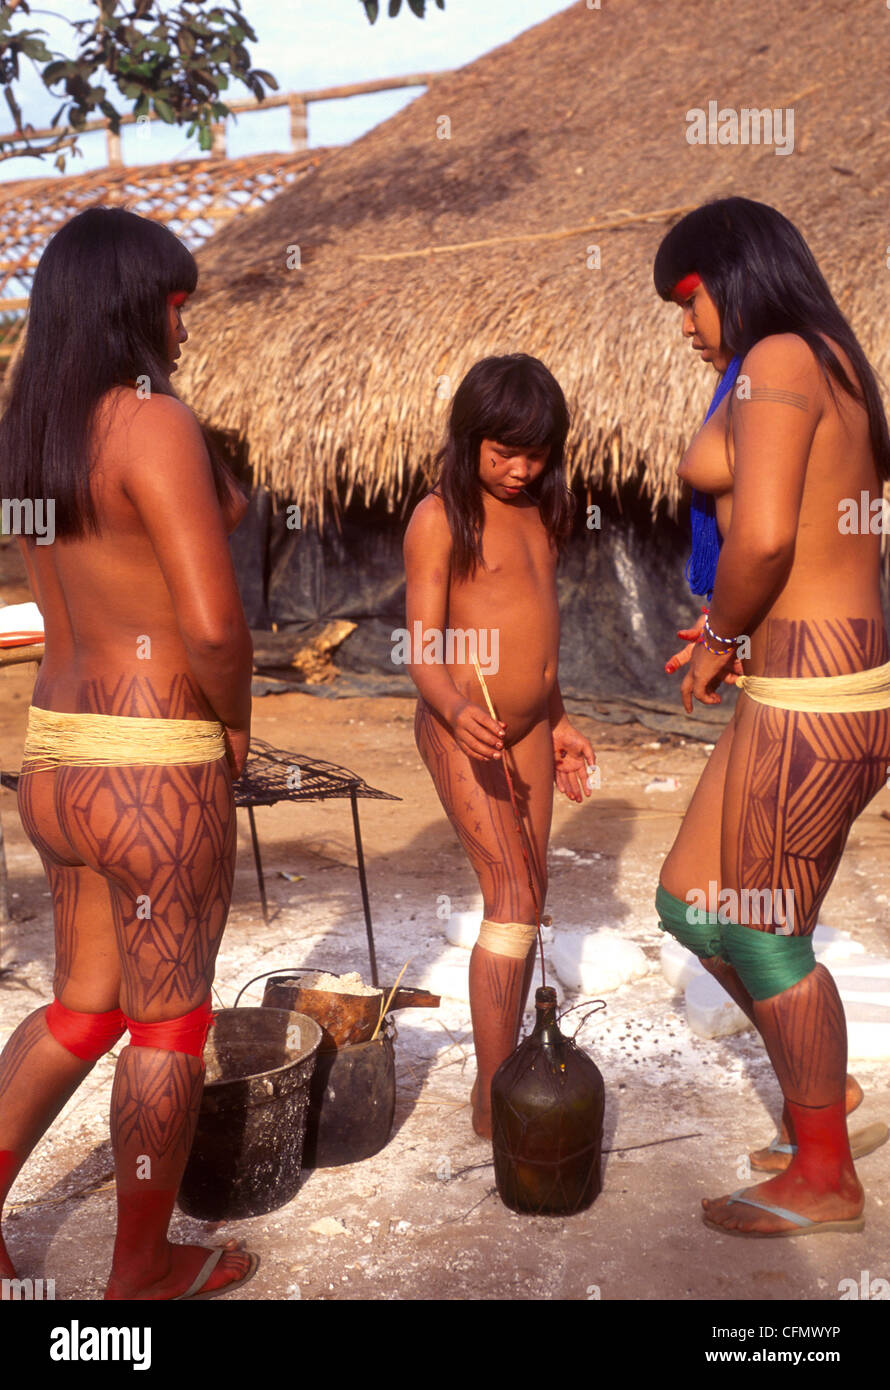 Native amazon fucking naked images